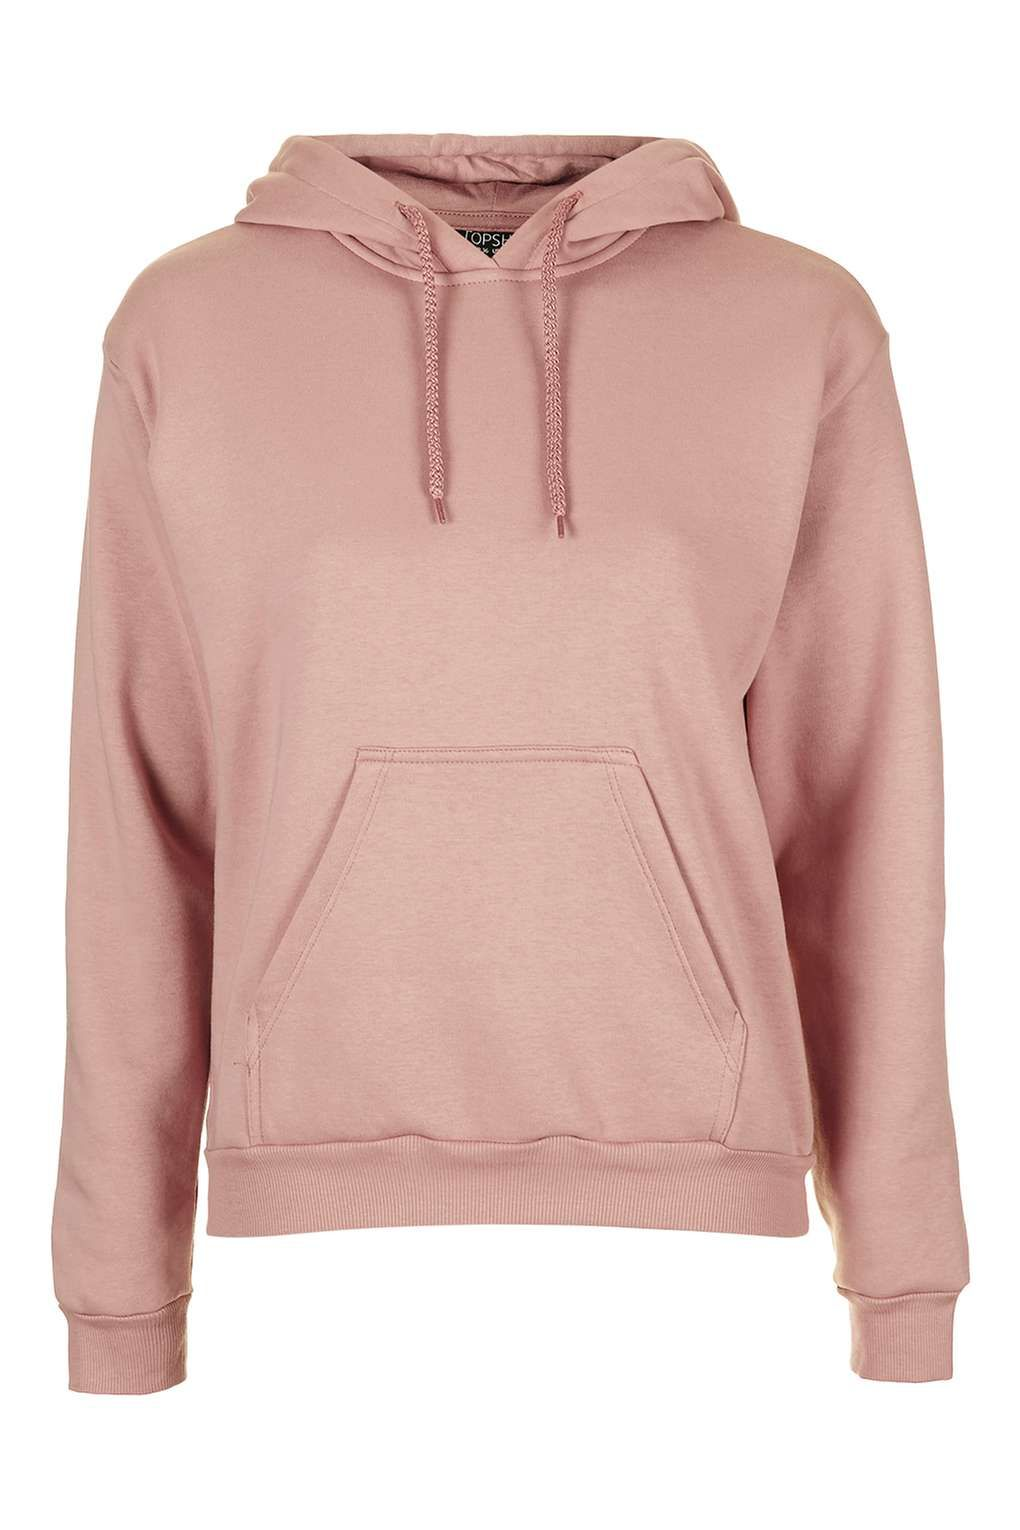 http://us.topshop.com/en/tsus/product/clothing-70483/tops-70498/oversized- hoodie-5604592?bi=20